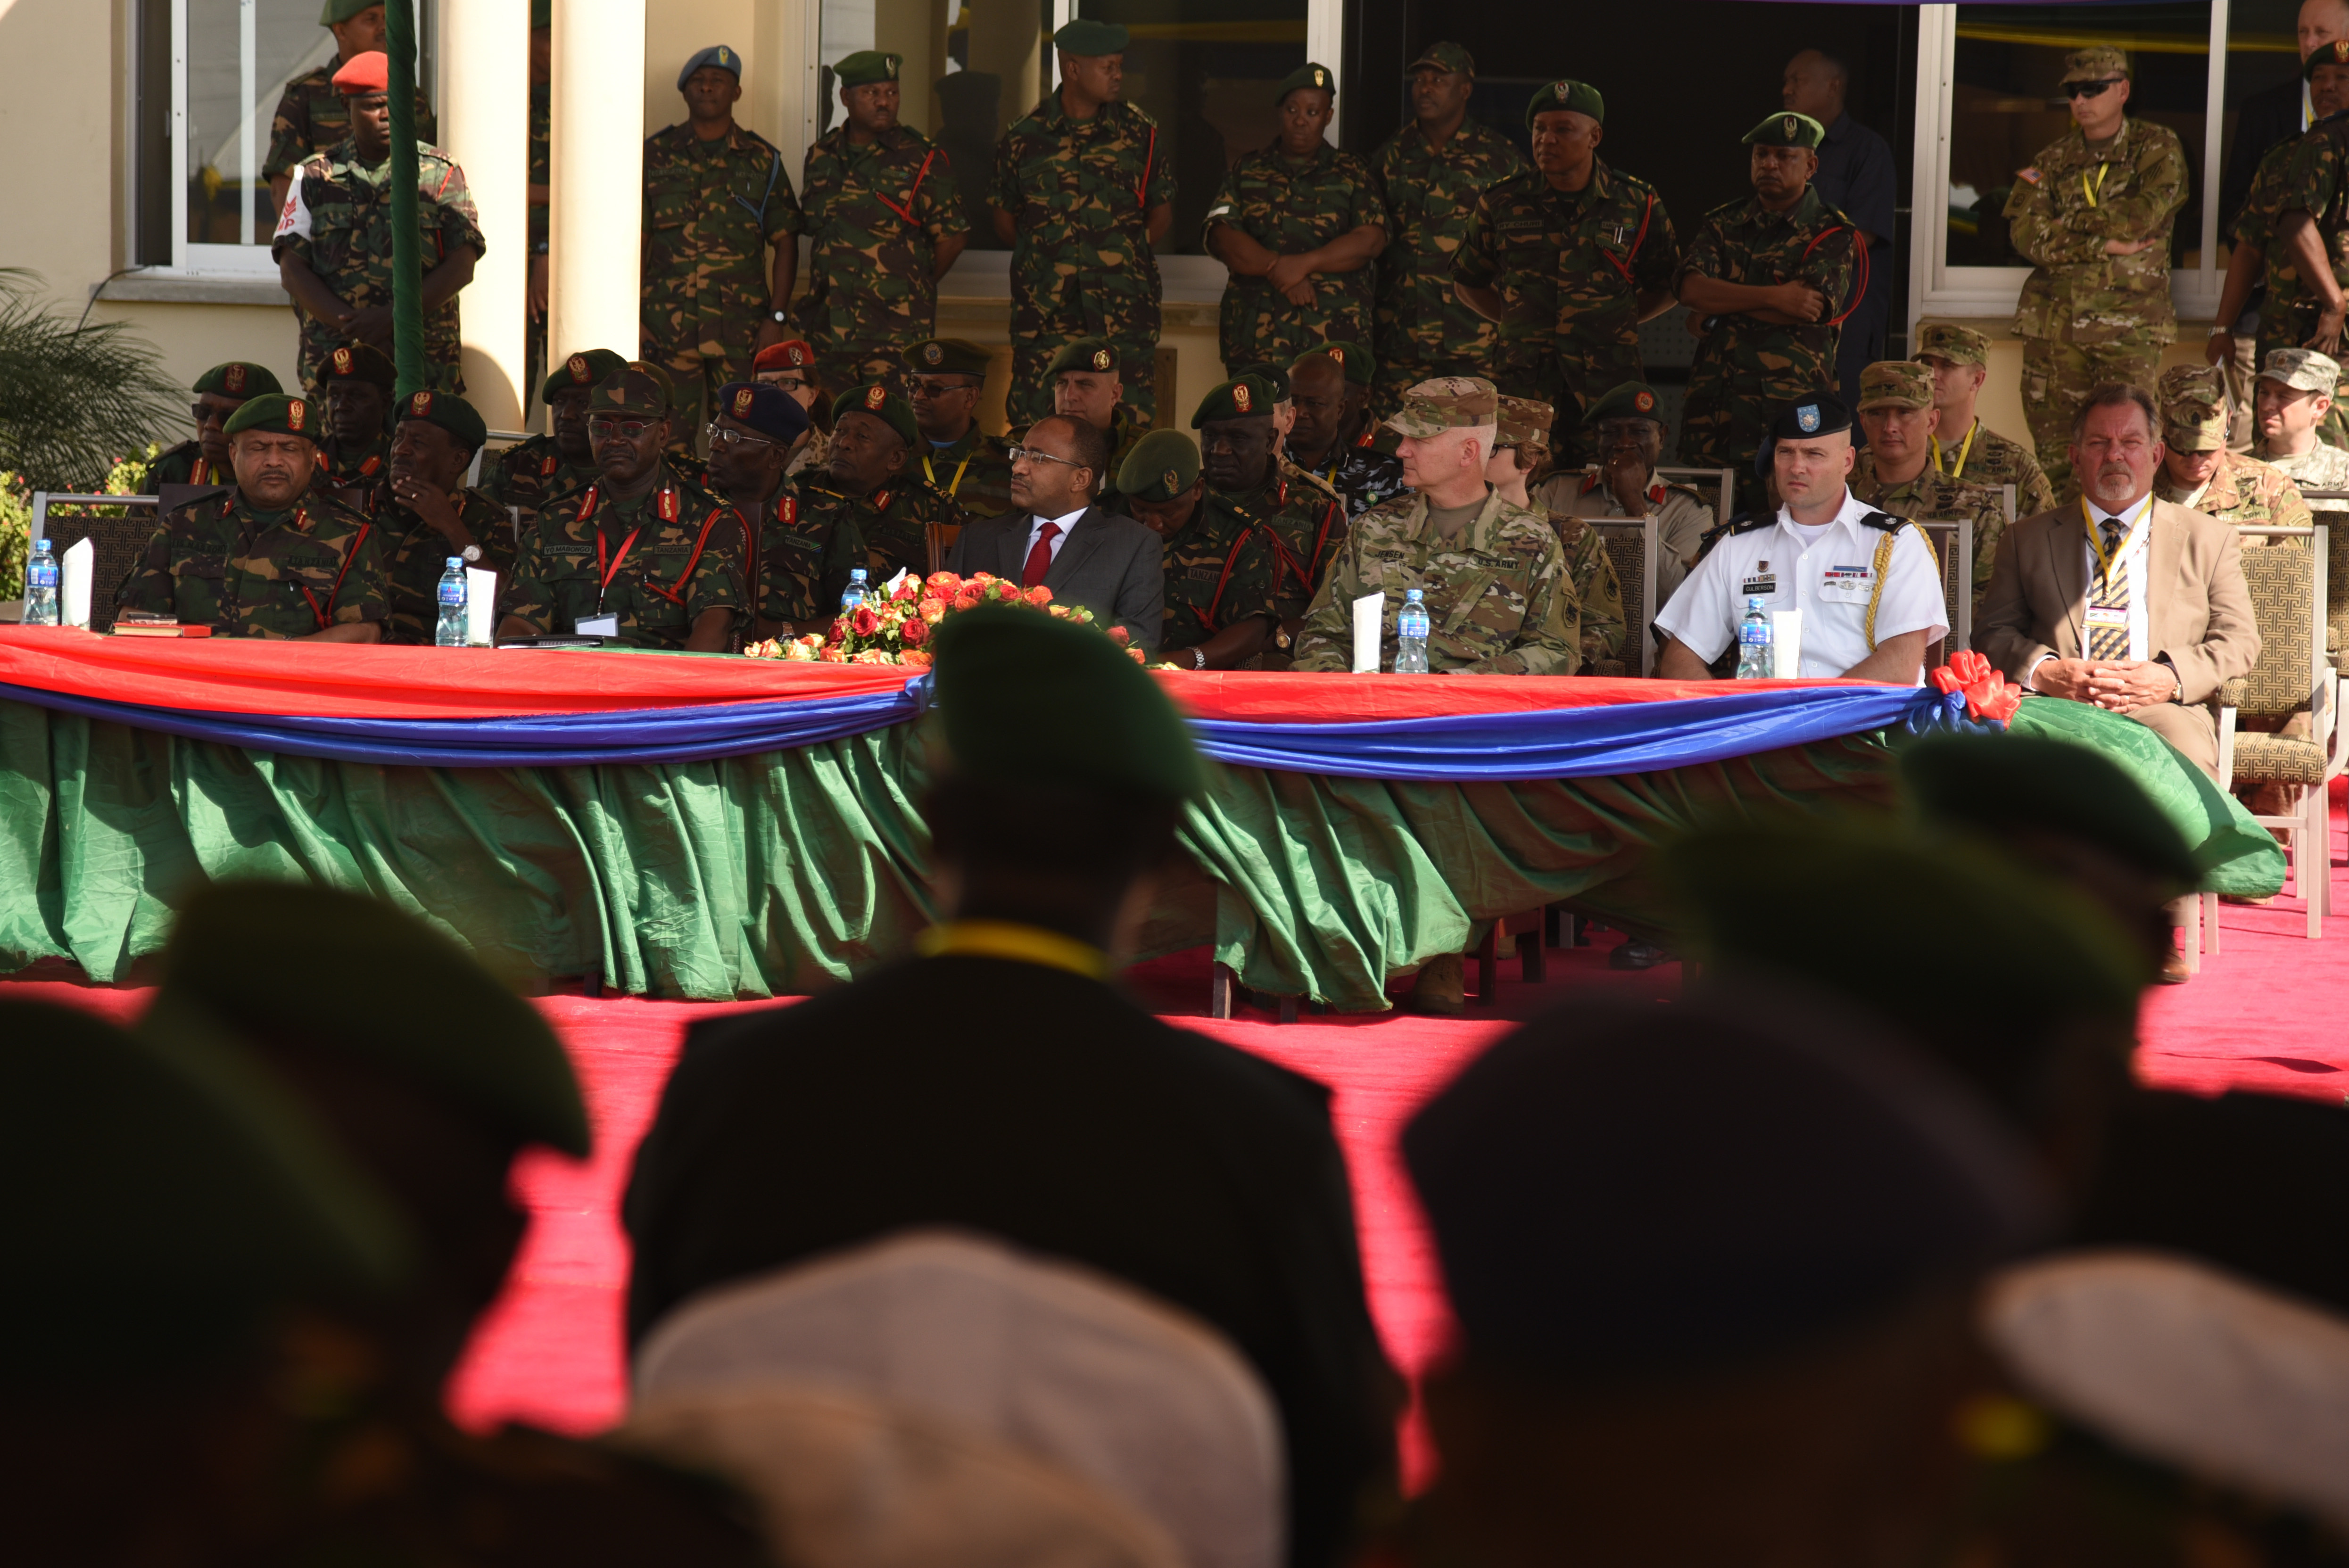 DAR ES SALAAM, Tanzania – Senior military leaders from the Tanzanian and U.S. militaries, alongside Hussein Ali Mwinyi, Tanzanian Minister of Defense and National Service, preside over the opening ceremony for exercise Eastern Accord 2016 at the Tanzanian Peacekeeping Training Centre, July 11, 2016, Dar es Salaam, Tanzania. EA16 is an annual, combined, joint military exercise that brings together partner nations to practice and demonstrate proficiency in conducting peacekeeping operations. (U.S. Air Force photo by Staff Sgt. Tiffany DeNault/Released)